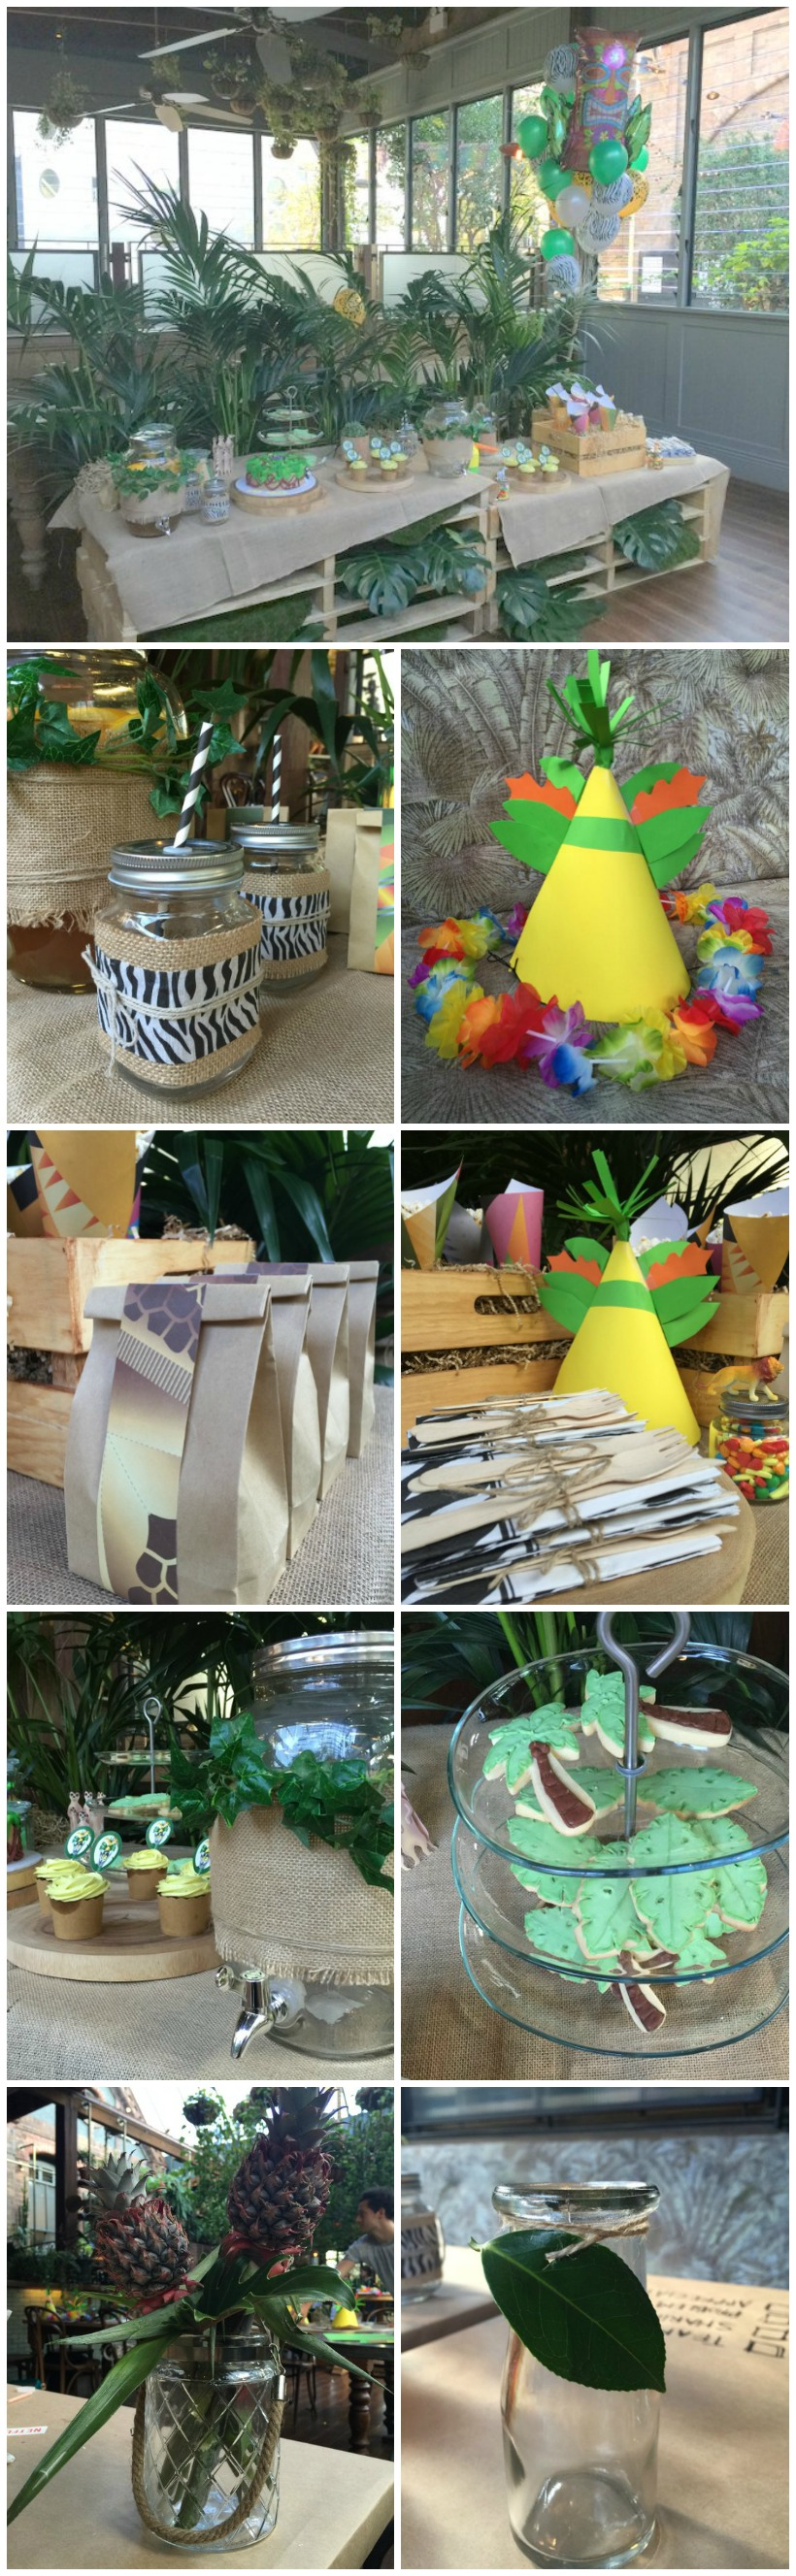 Madagascar/King Julien Themed Birthday Party